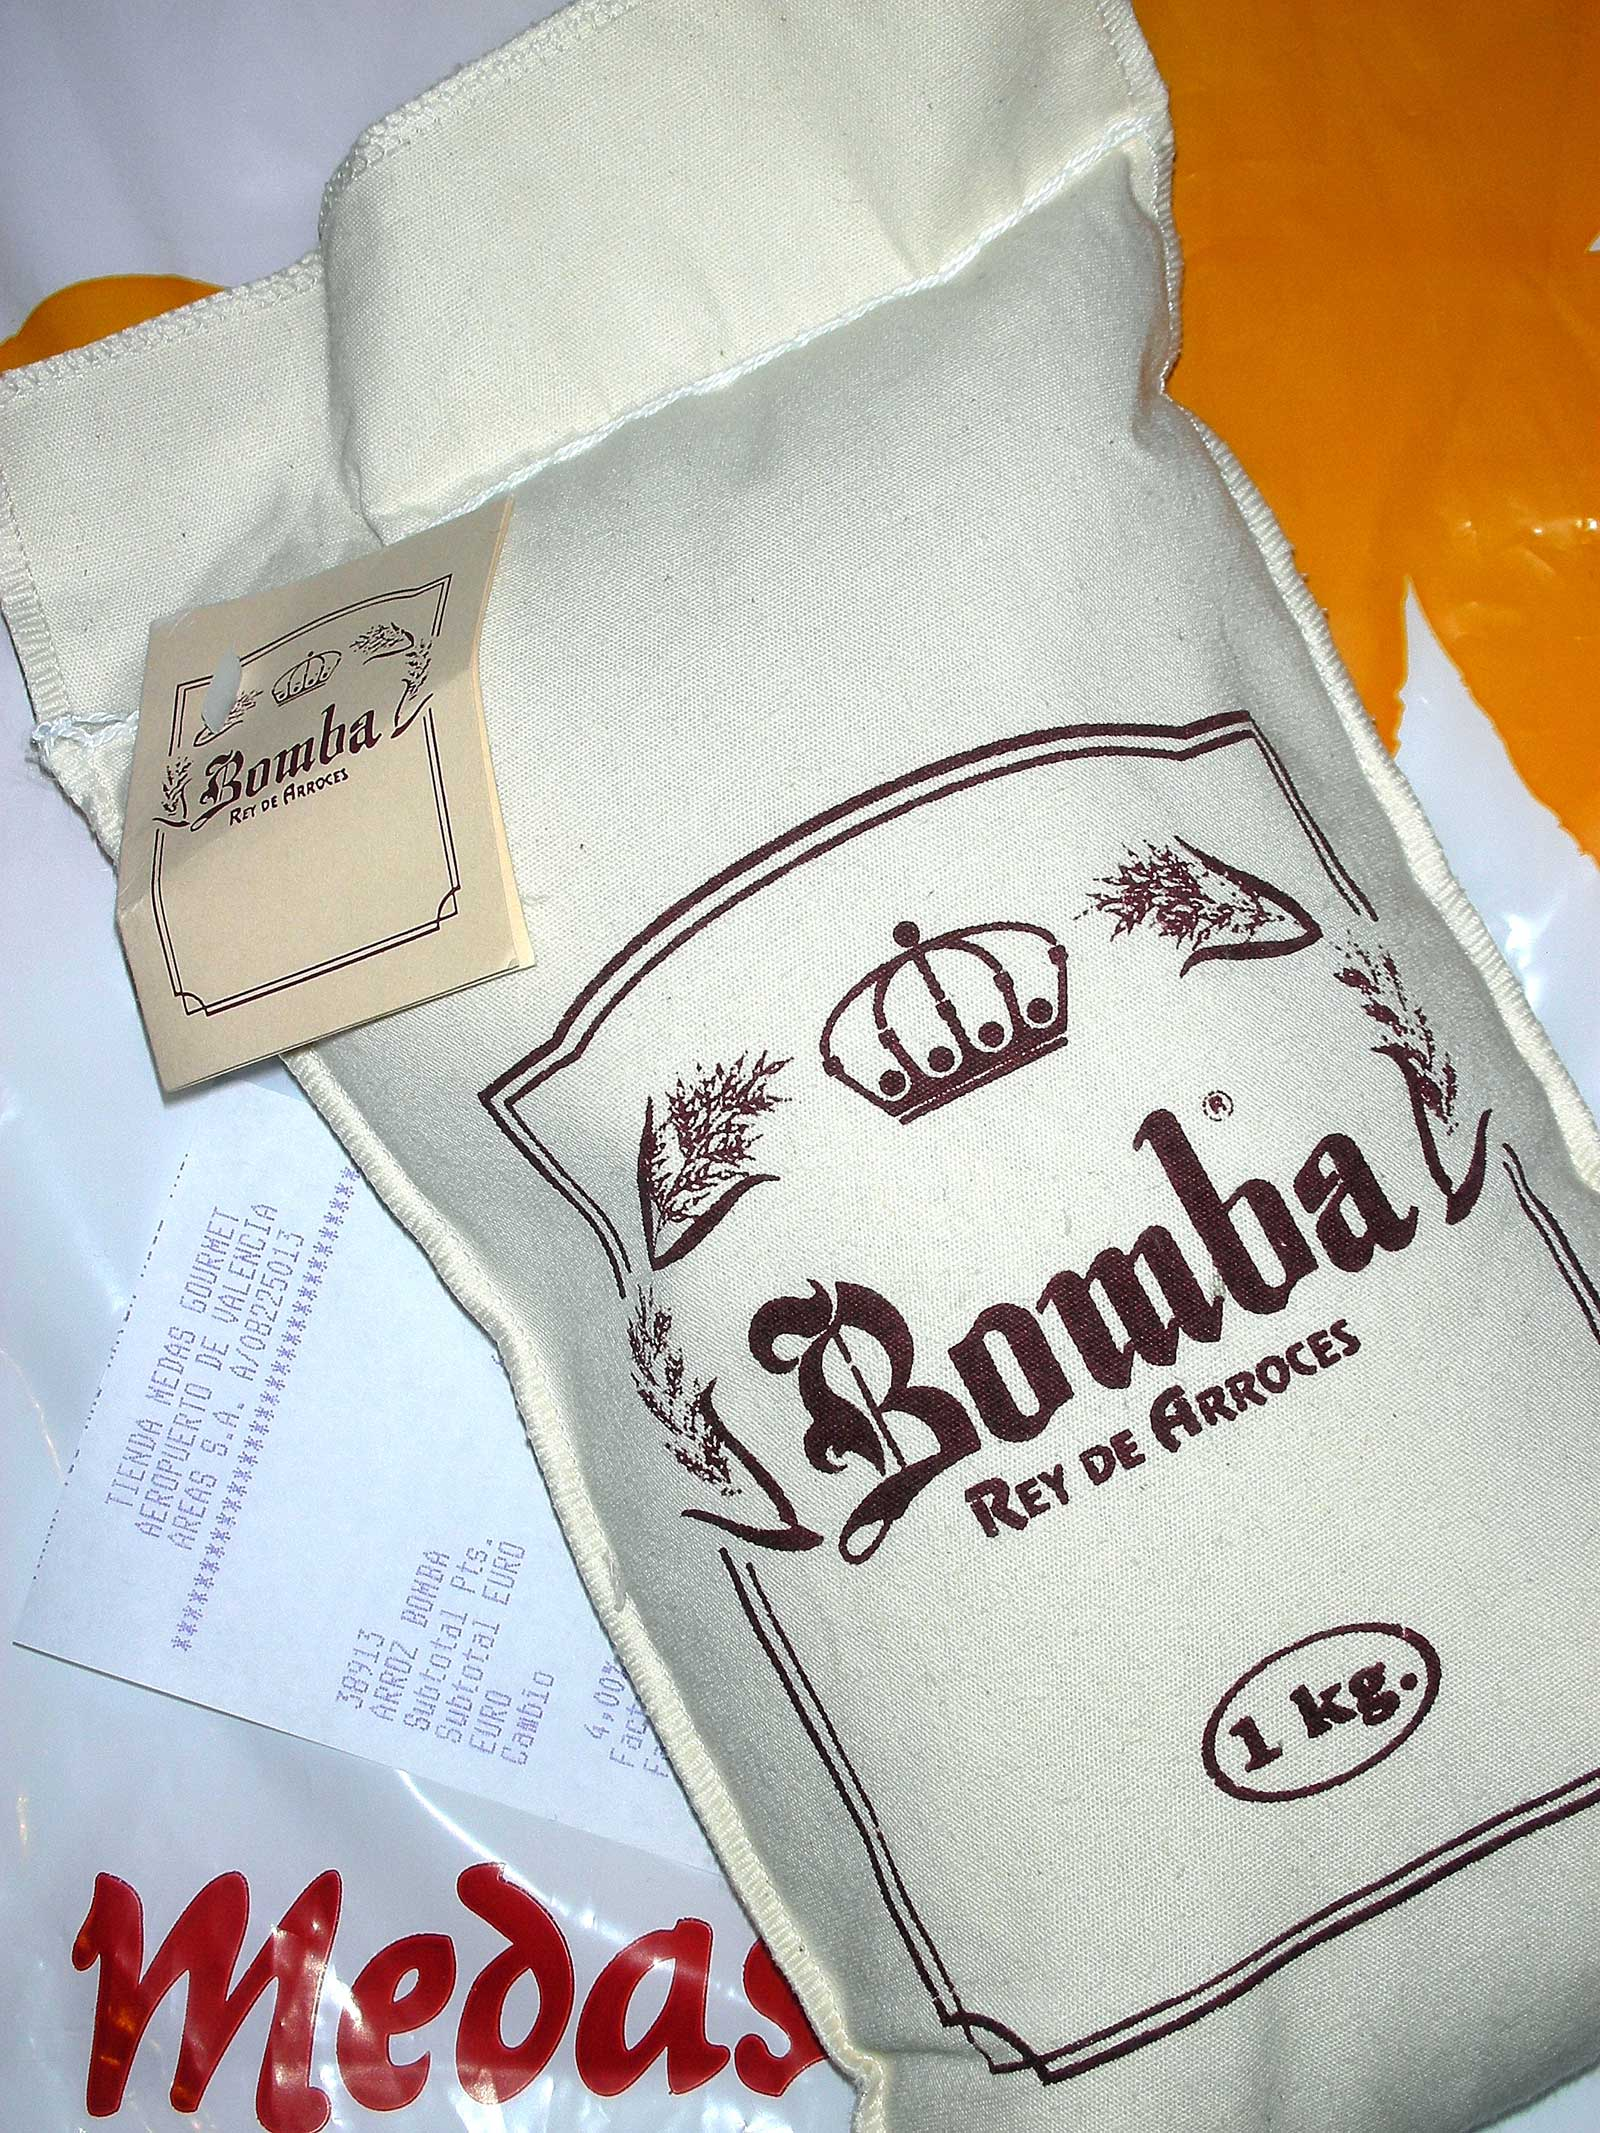 Bomba rice in bag